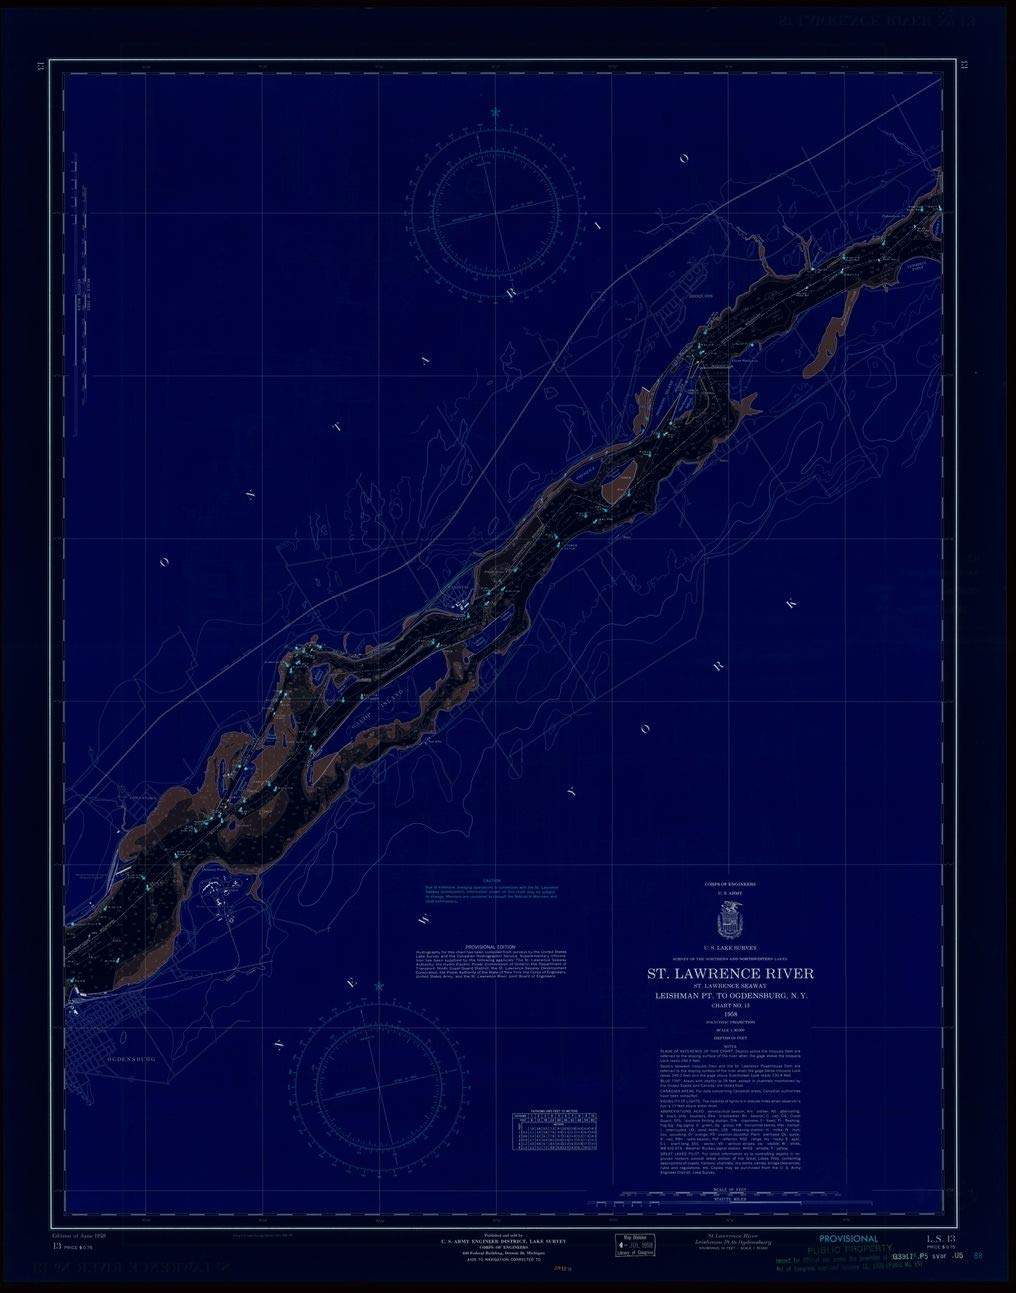 Vintography Blueprint Style 18 x 24 Reprint of 1958 Nautical Chart ST. Lawrence River, ST. Lawrence Seaway, LEISHMAN PT. to Ogdensburg, N.Y. by Lake Survey NY